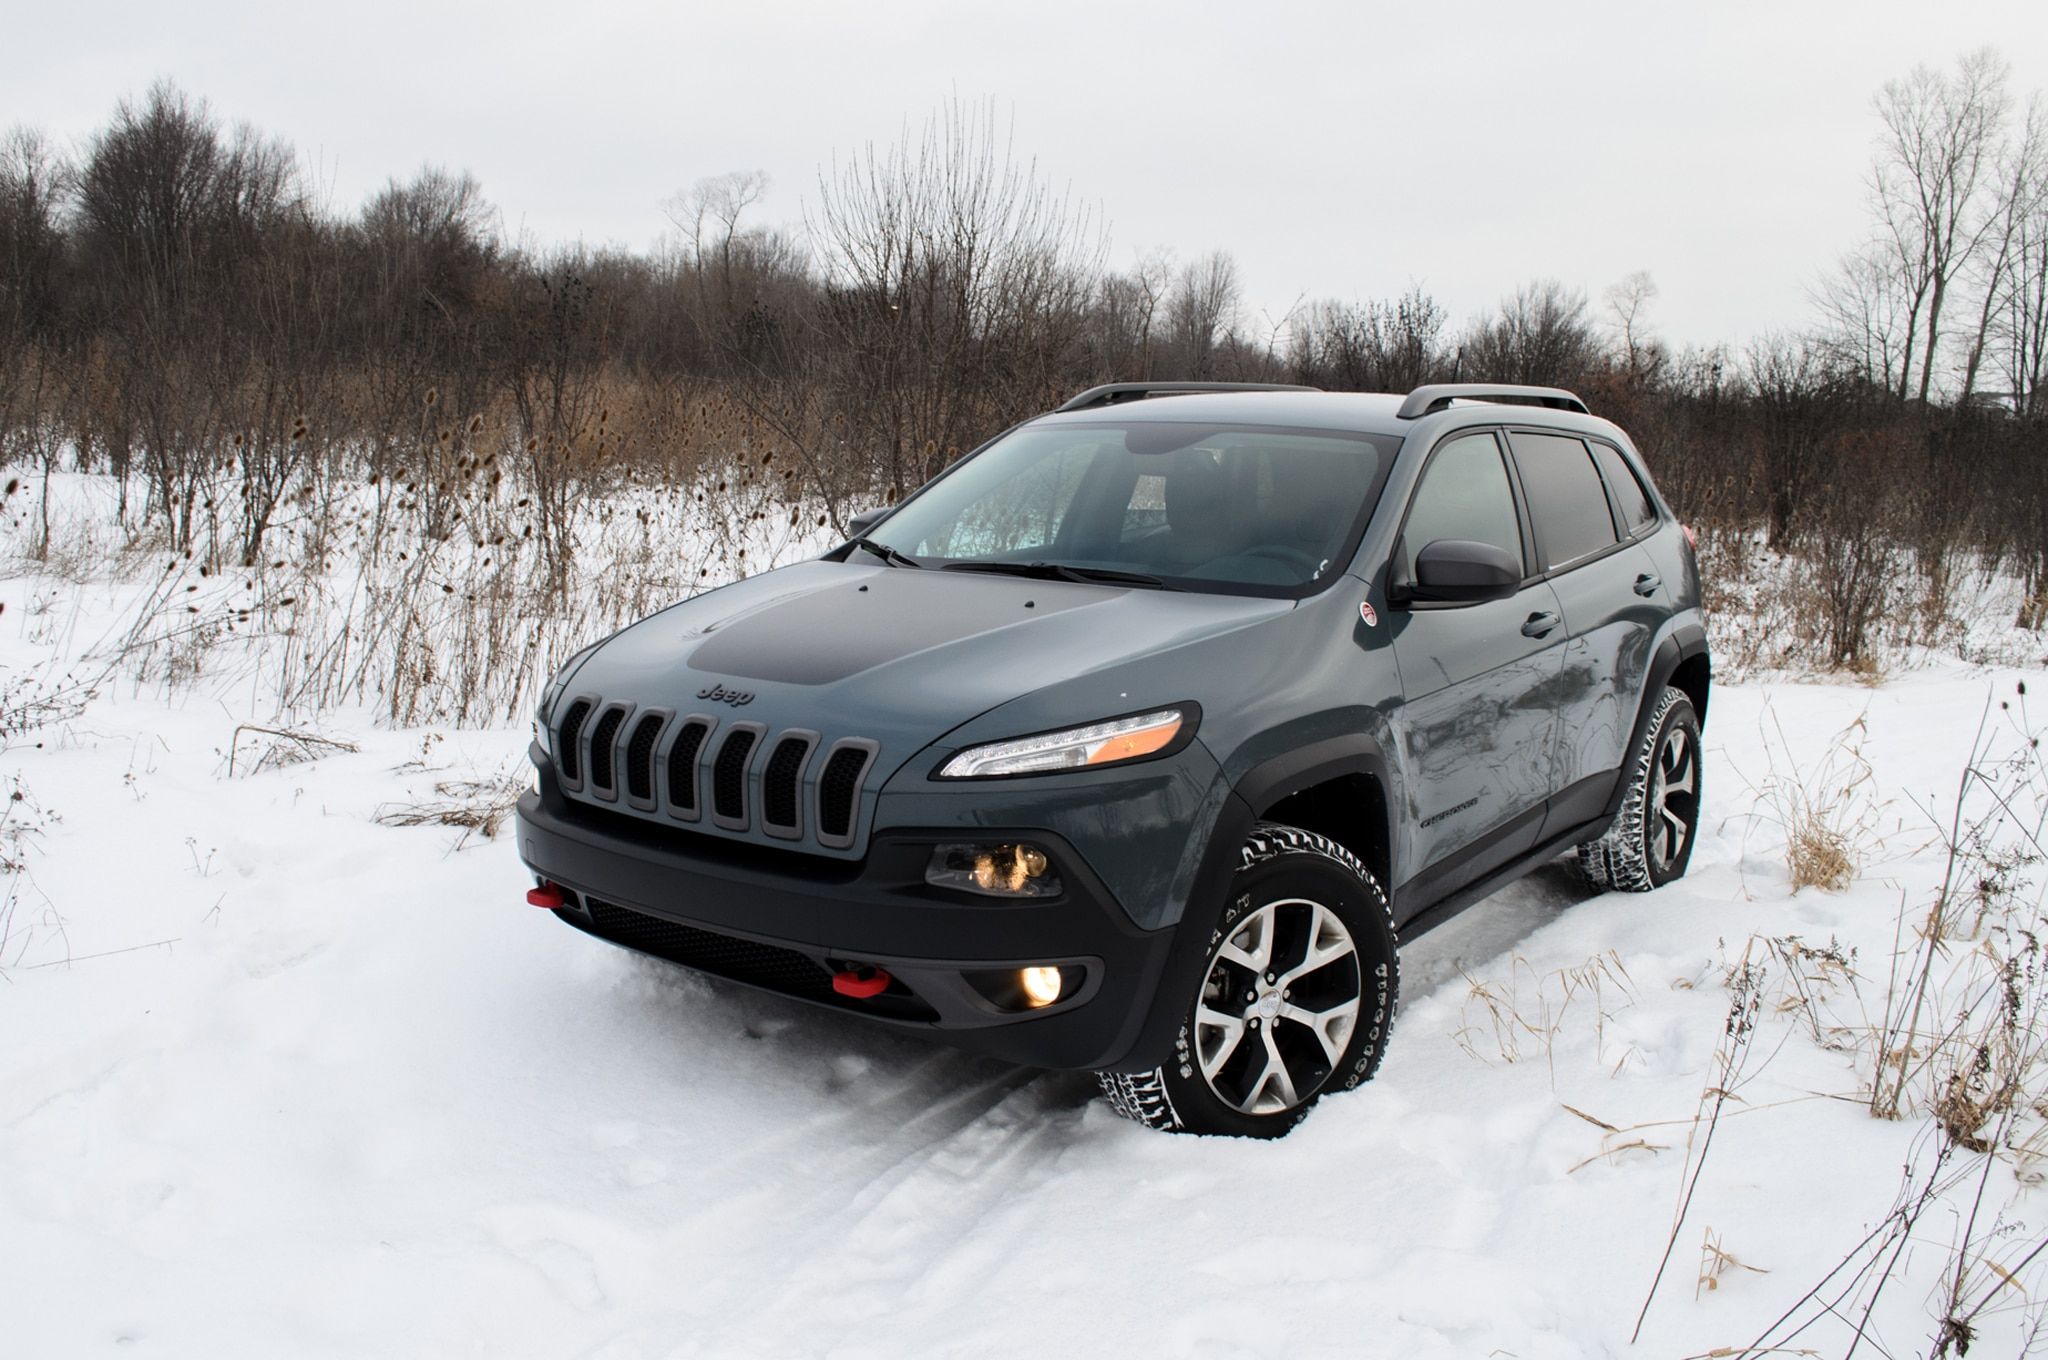 2014 Jeep Cherokee Trailhawk Front Three Quarters